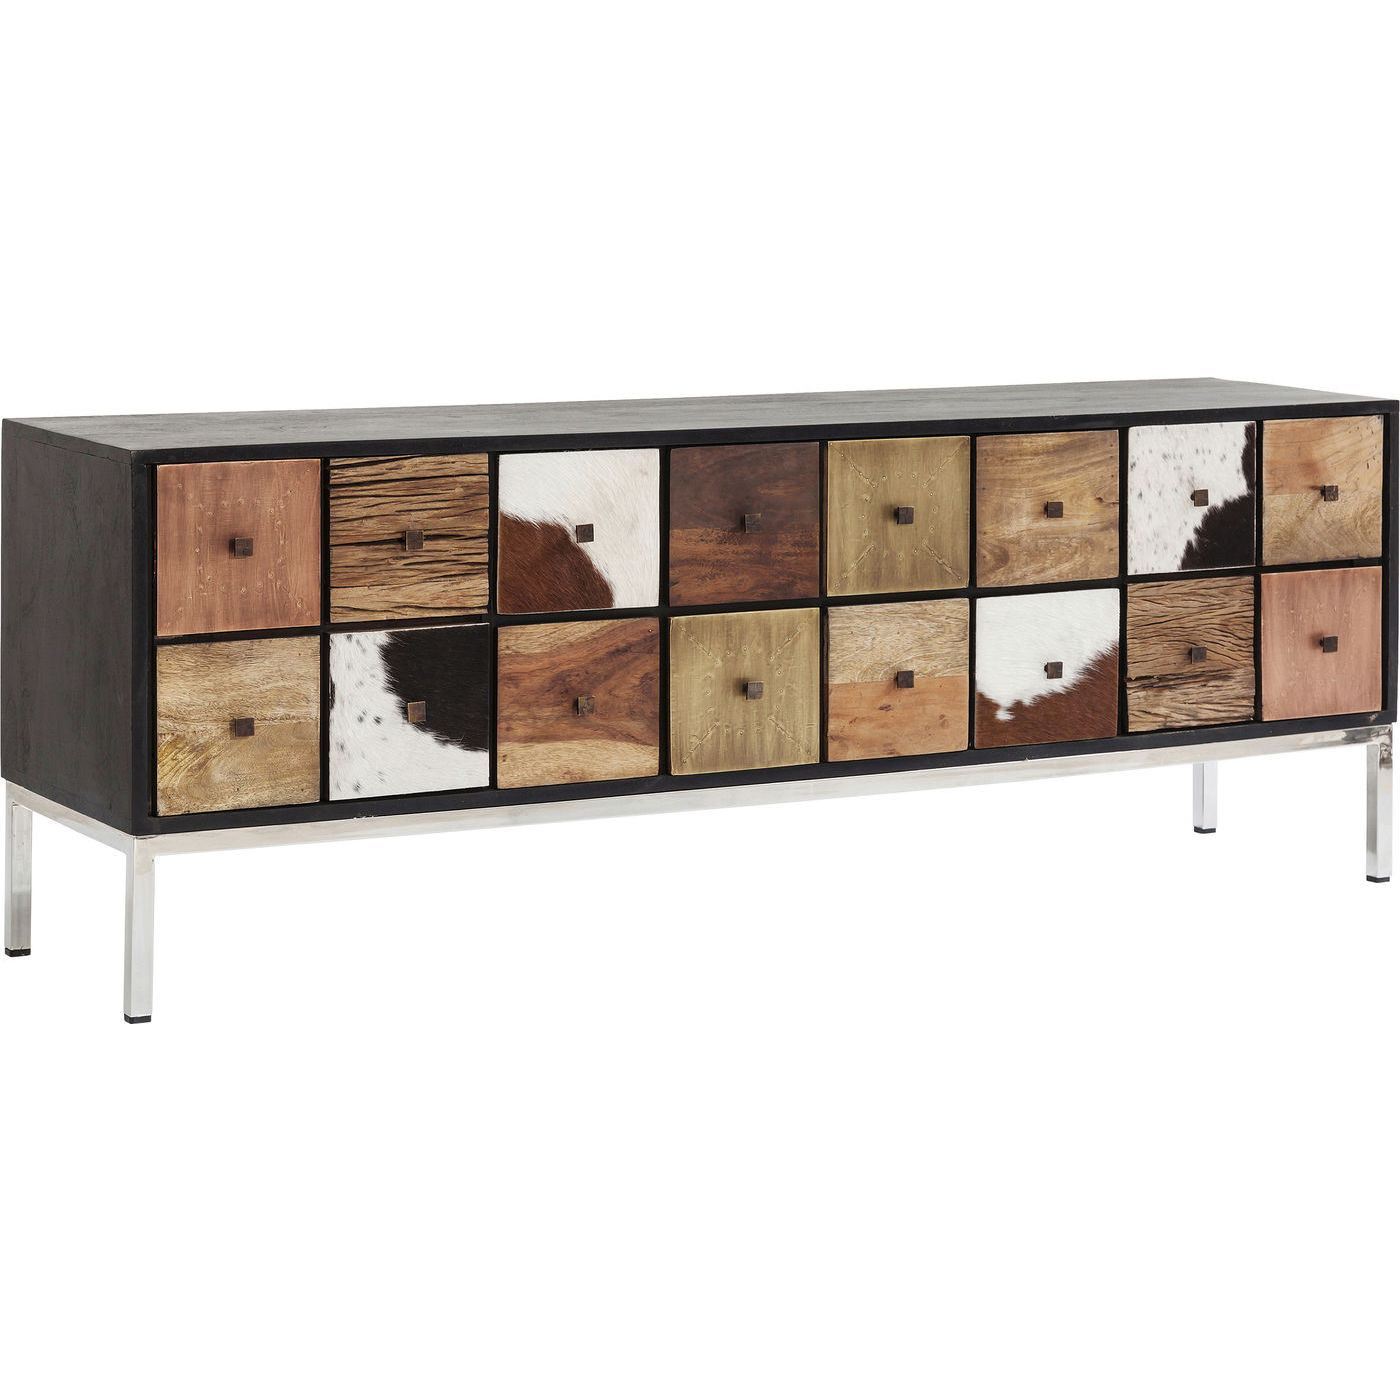 sideboard hutch 172cm kare design mutoni m bel. Black Bedroom Furniture Sets. Home Design Ideas